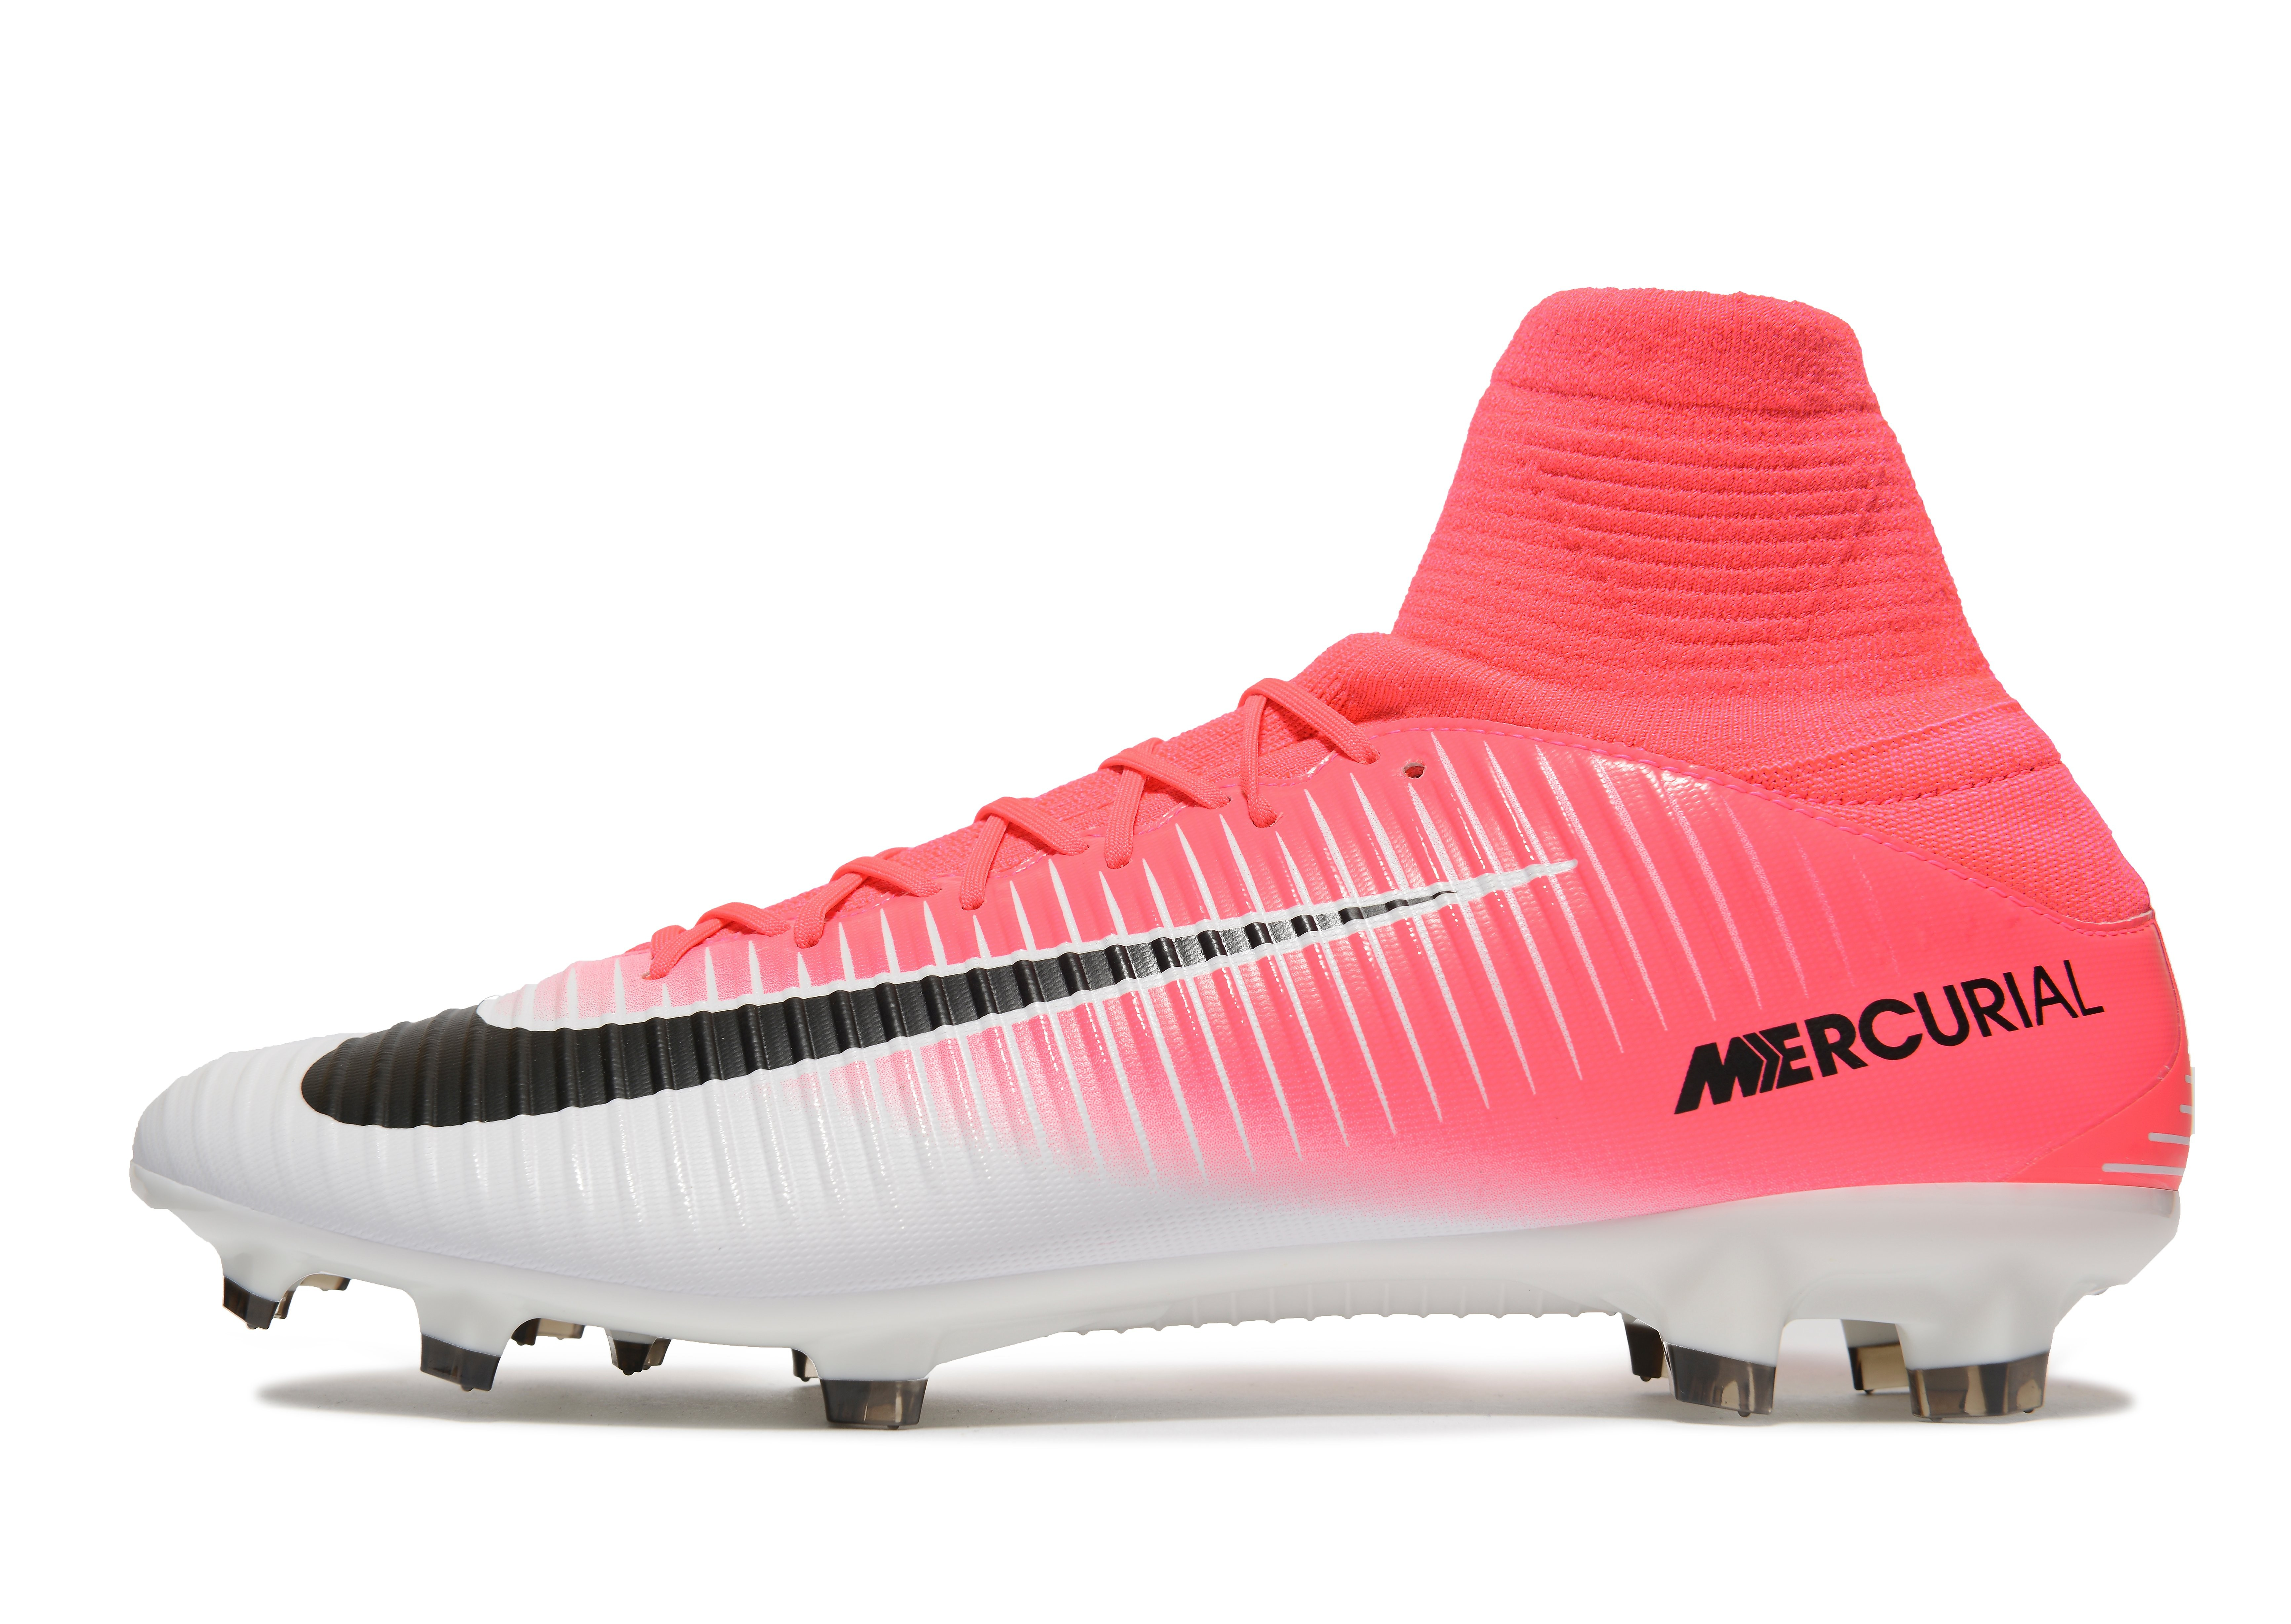 Nike Motion Blur Mercurial Victory Dynamic Fit Men's FG Football Boots